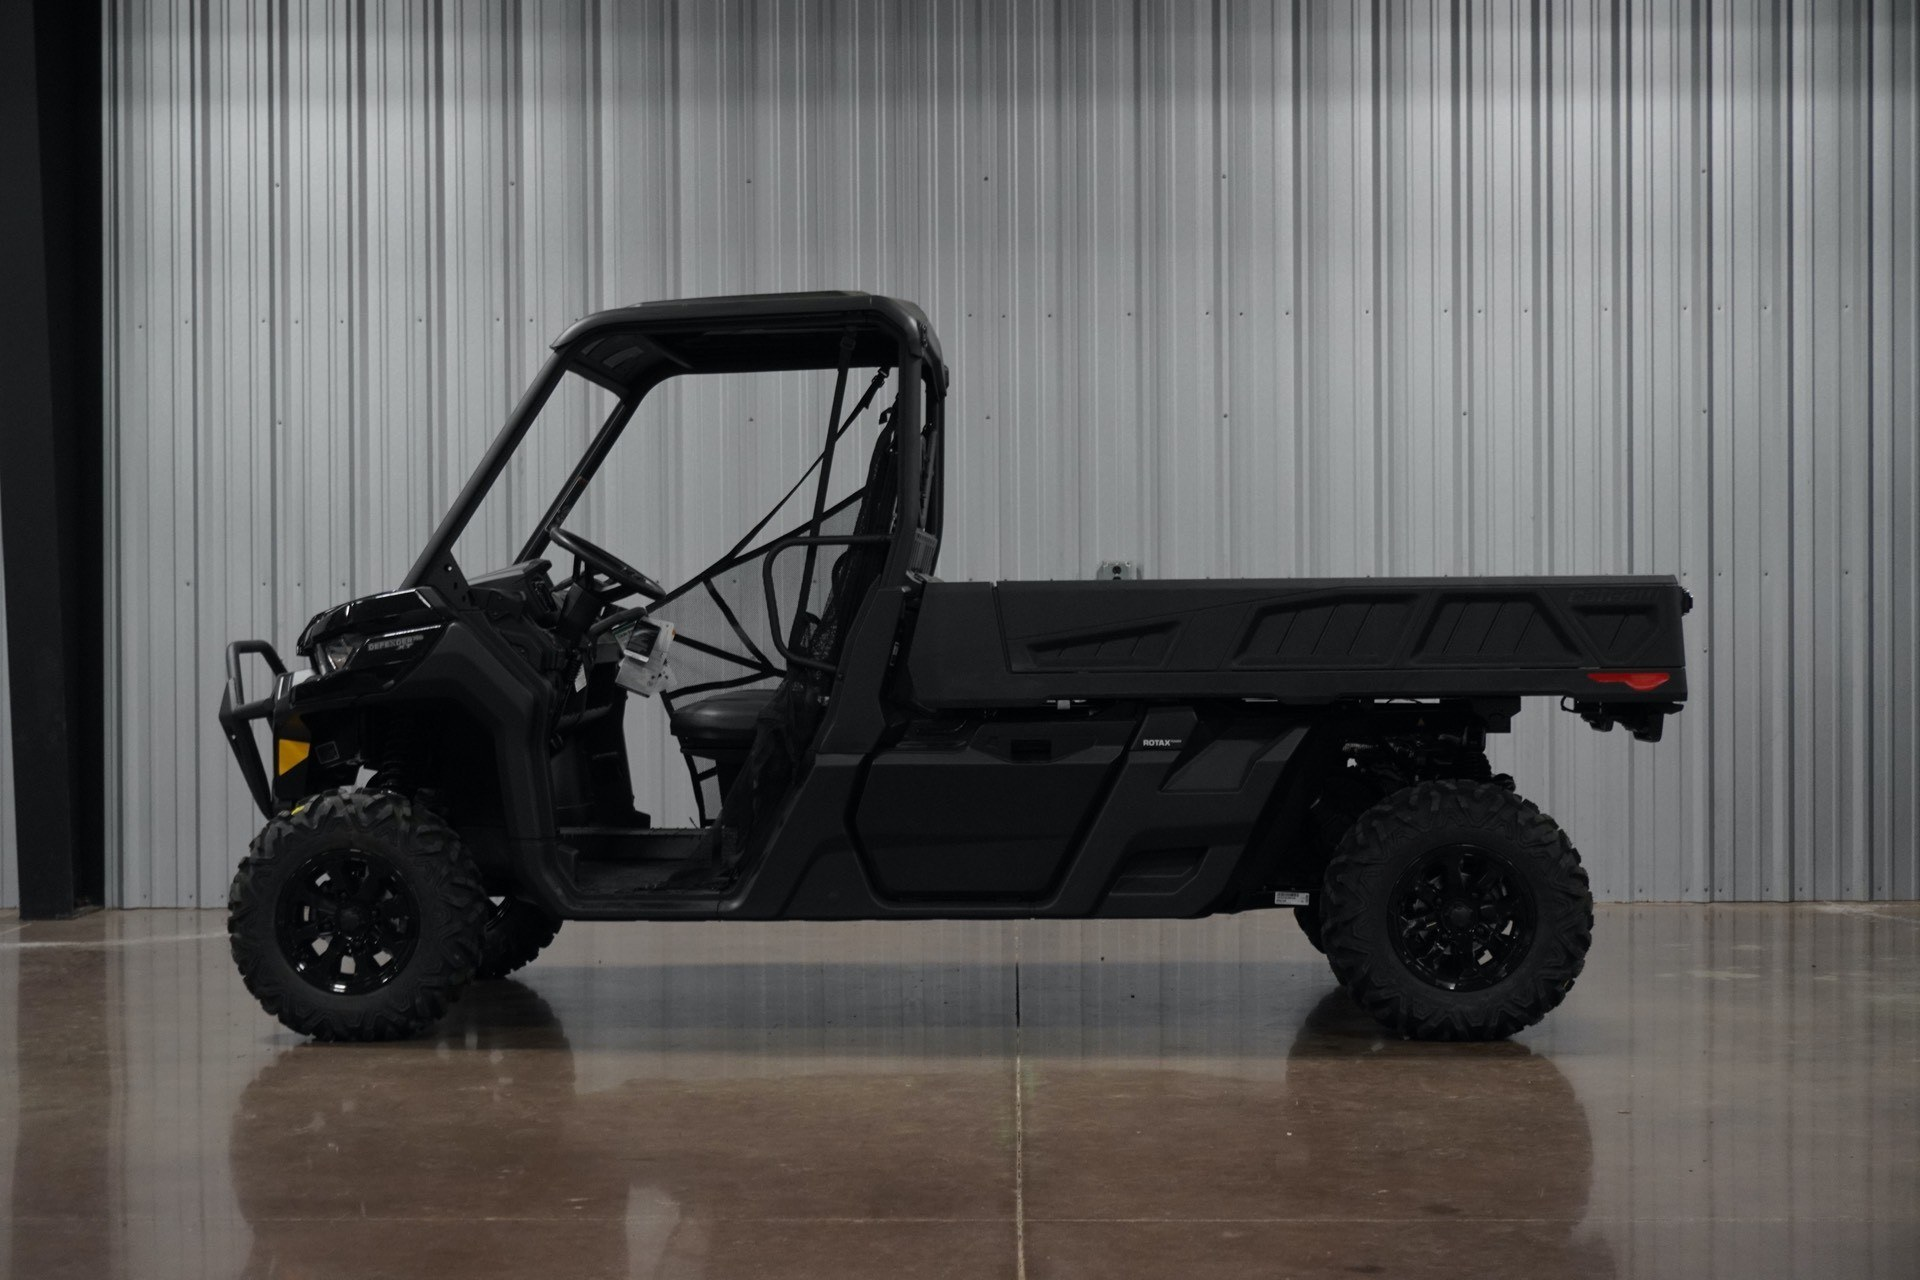 2020 Can-Am Defender Pro XT HD10 in Tulsa, Oklahoma - Photo 6